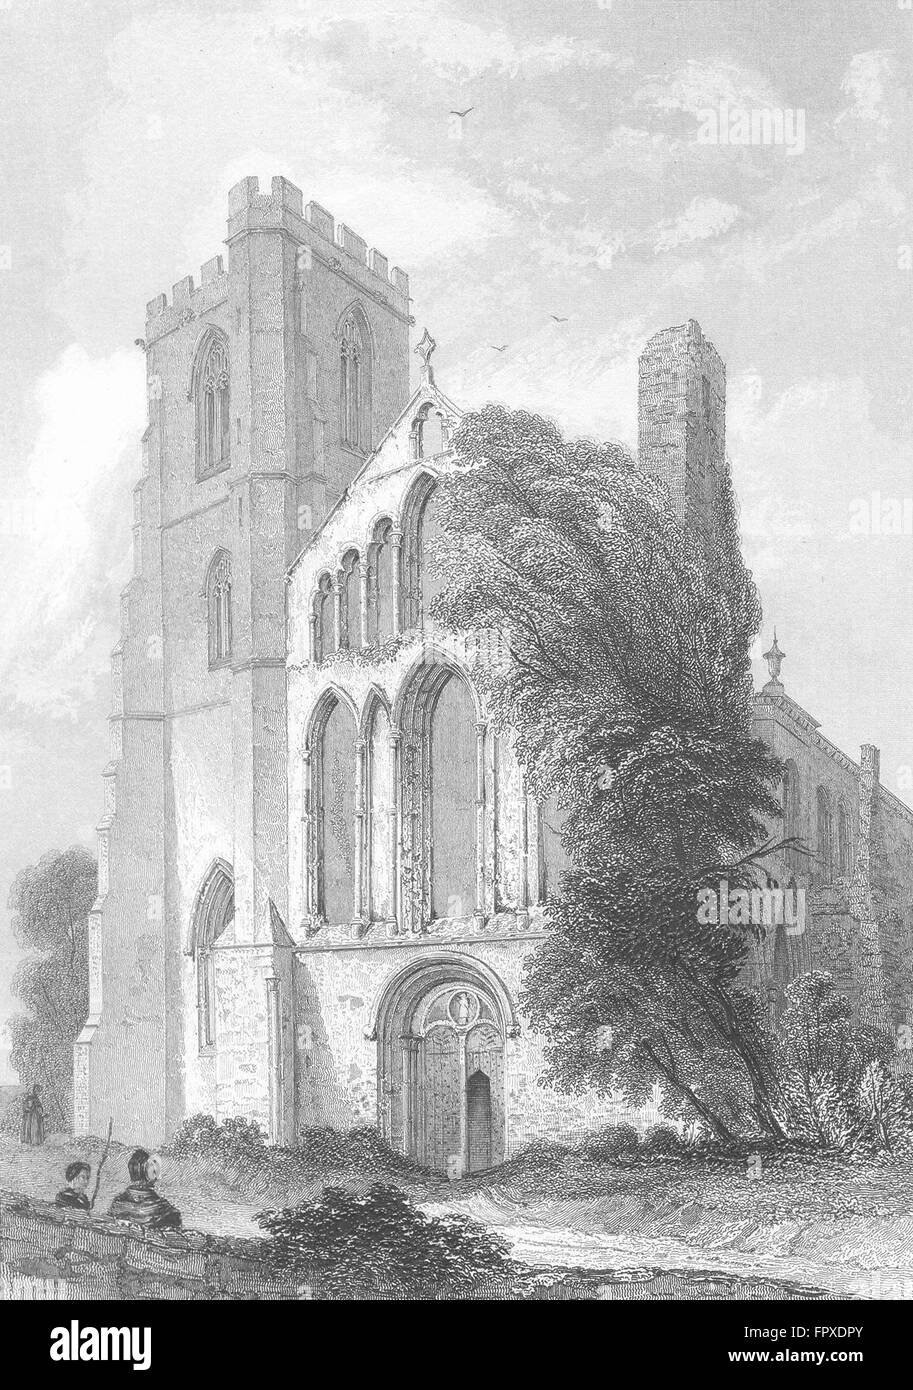 WALES: Llandaff Cathedral, antique print 1836 - Stock Image